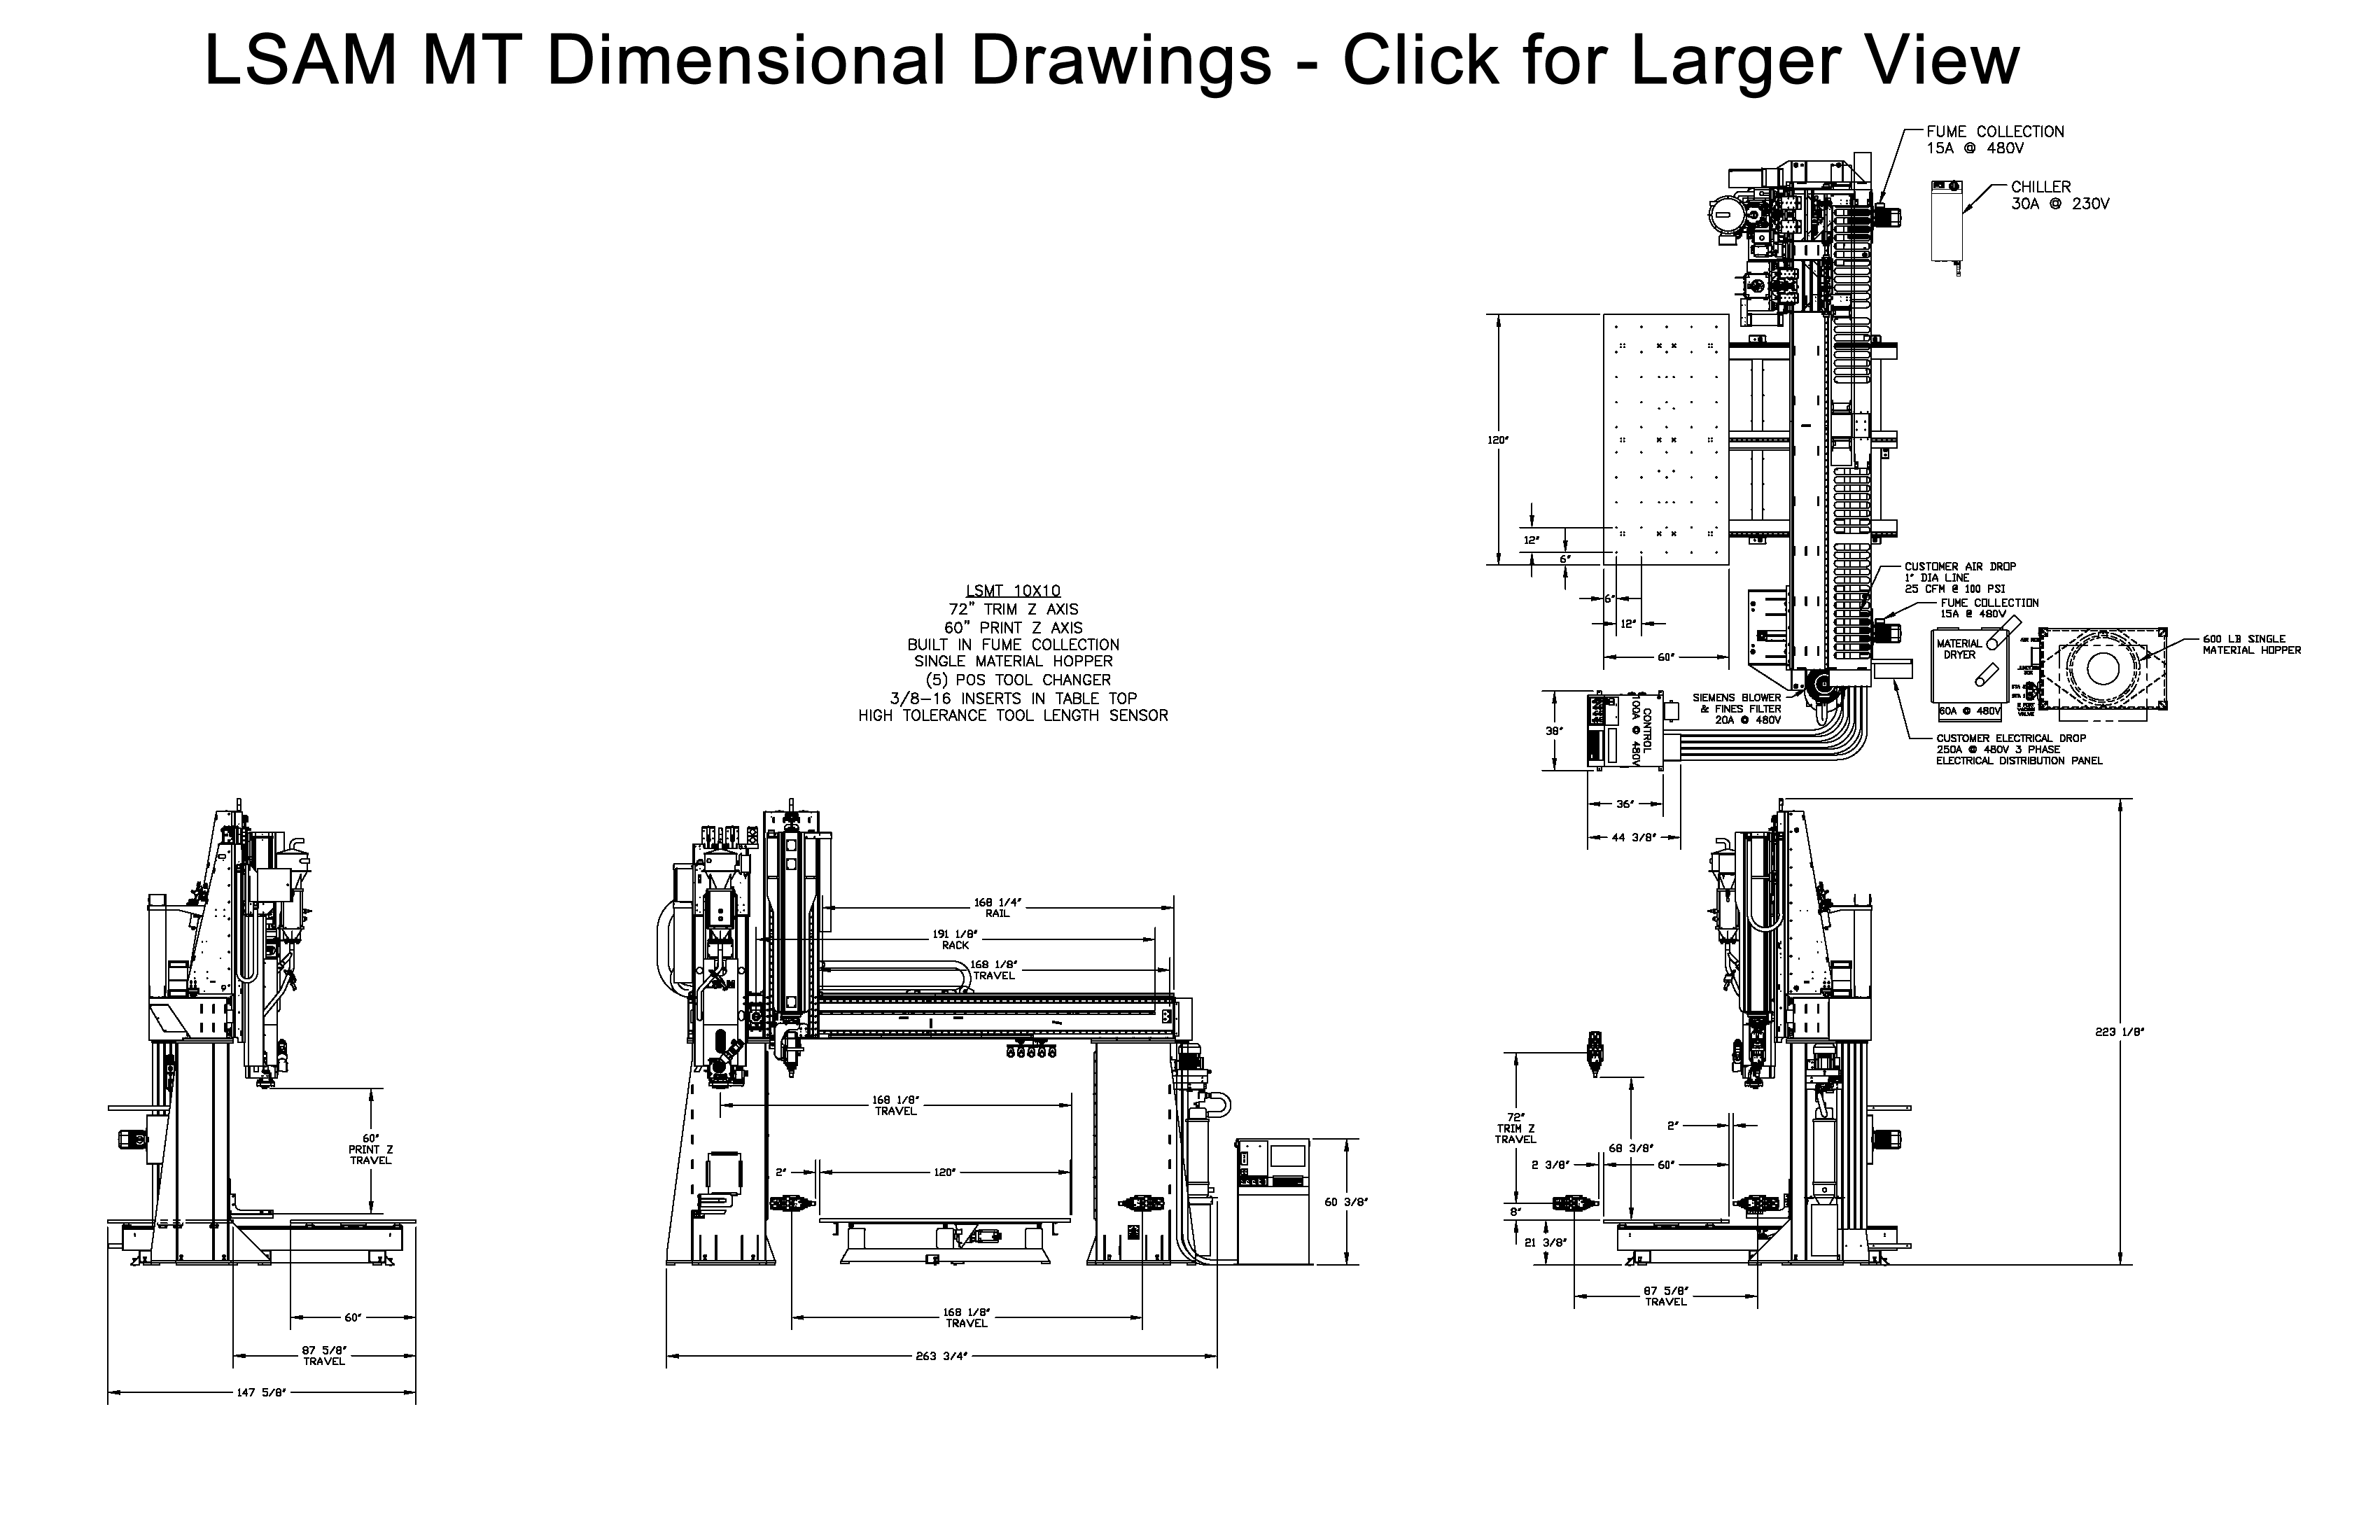 LSAM MT Dimensional Drawings Shown